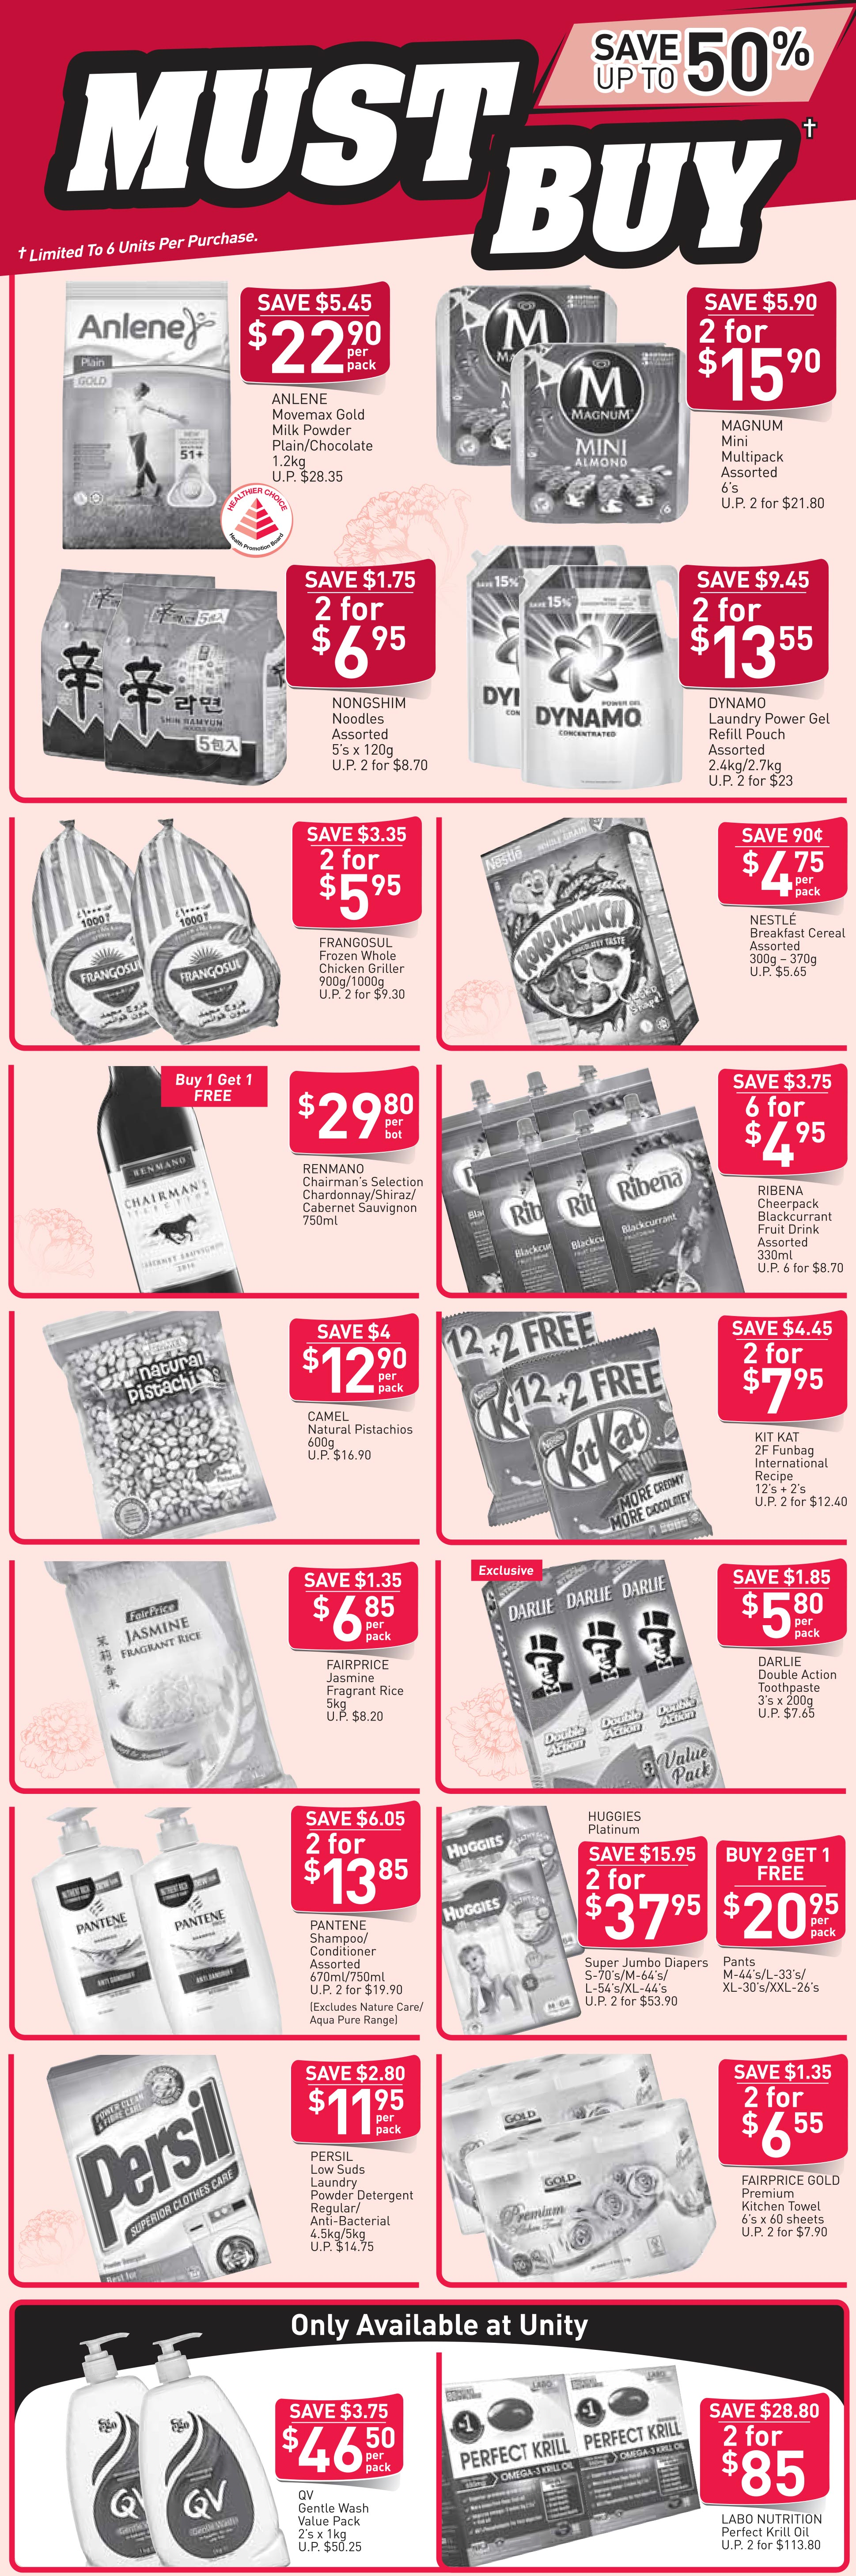 NTUC FairPrice Singapore Your Weekly Saver Promotion 31 Jan - 13 Feb 2019   Why Not Deals 1 & Promotions